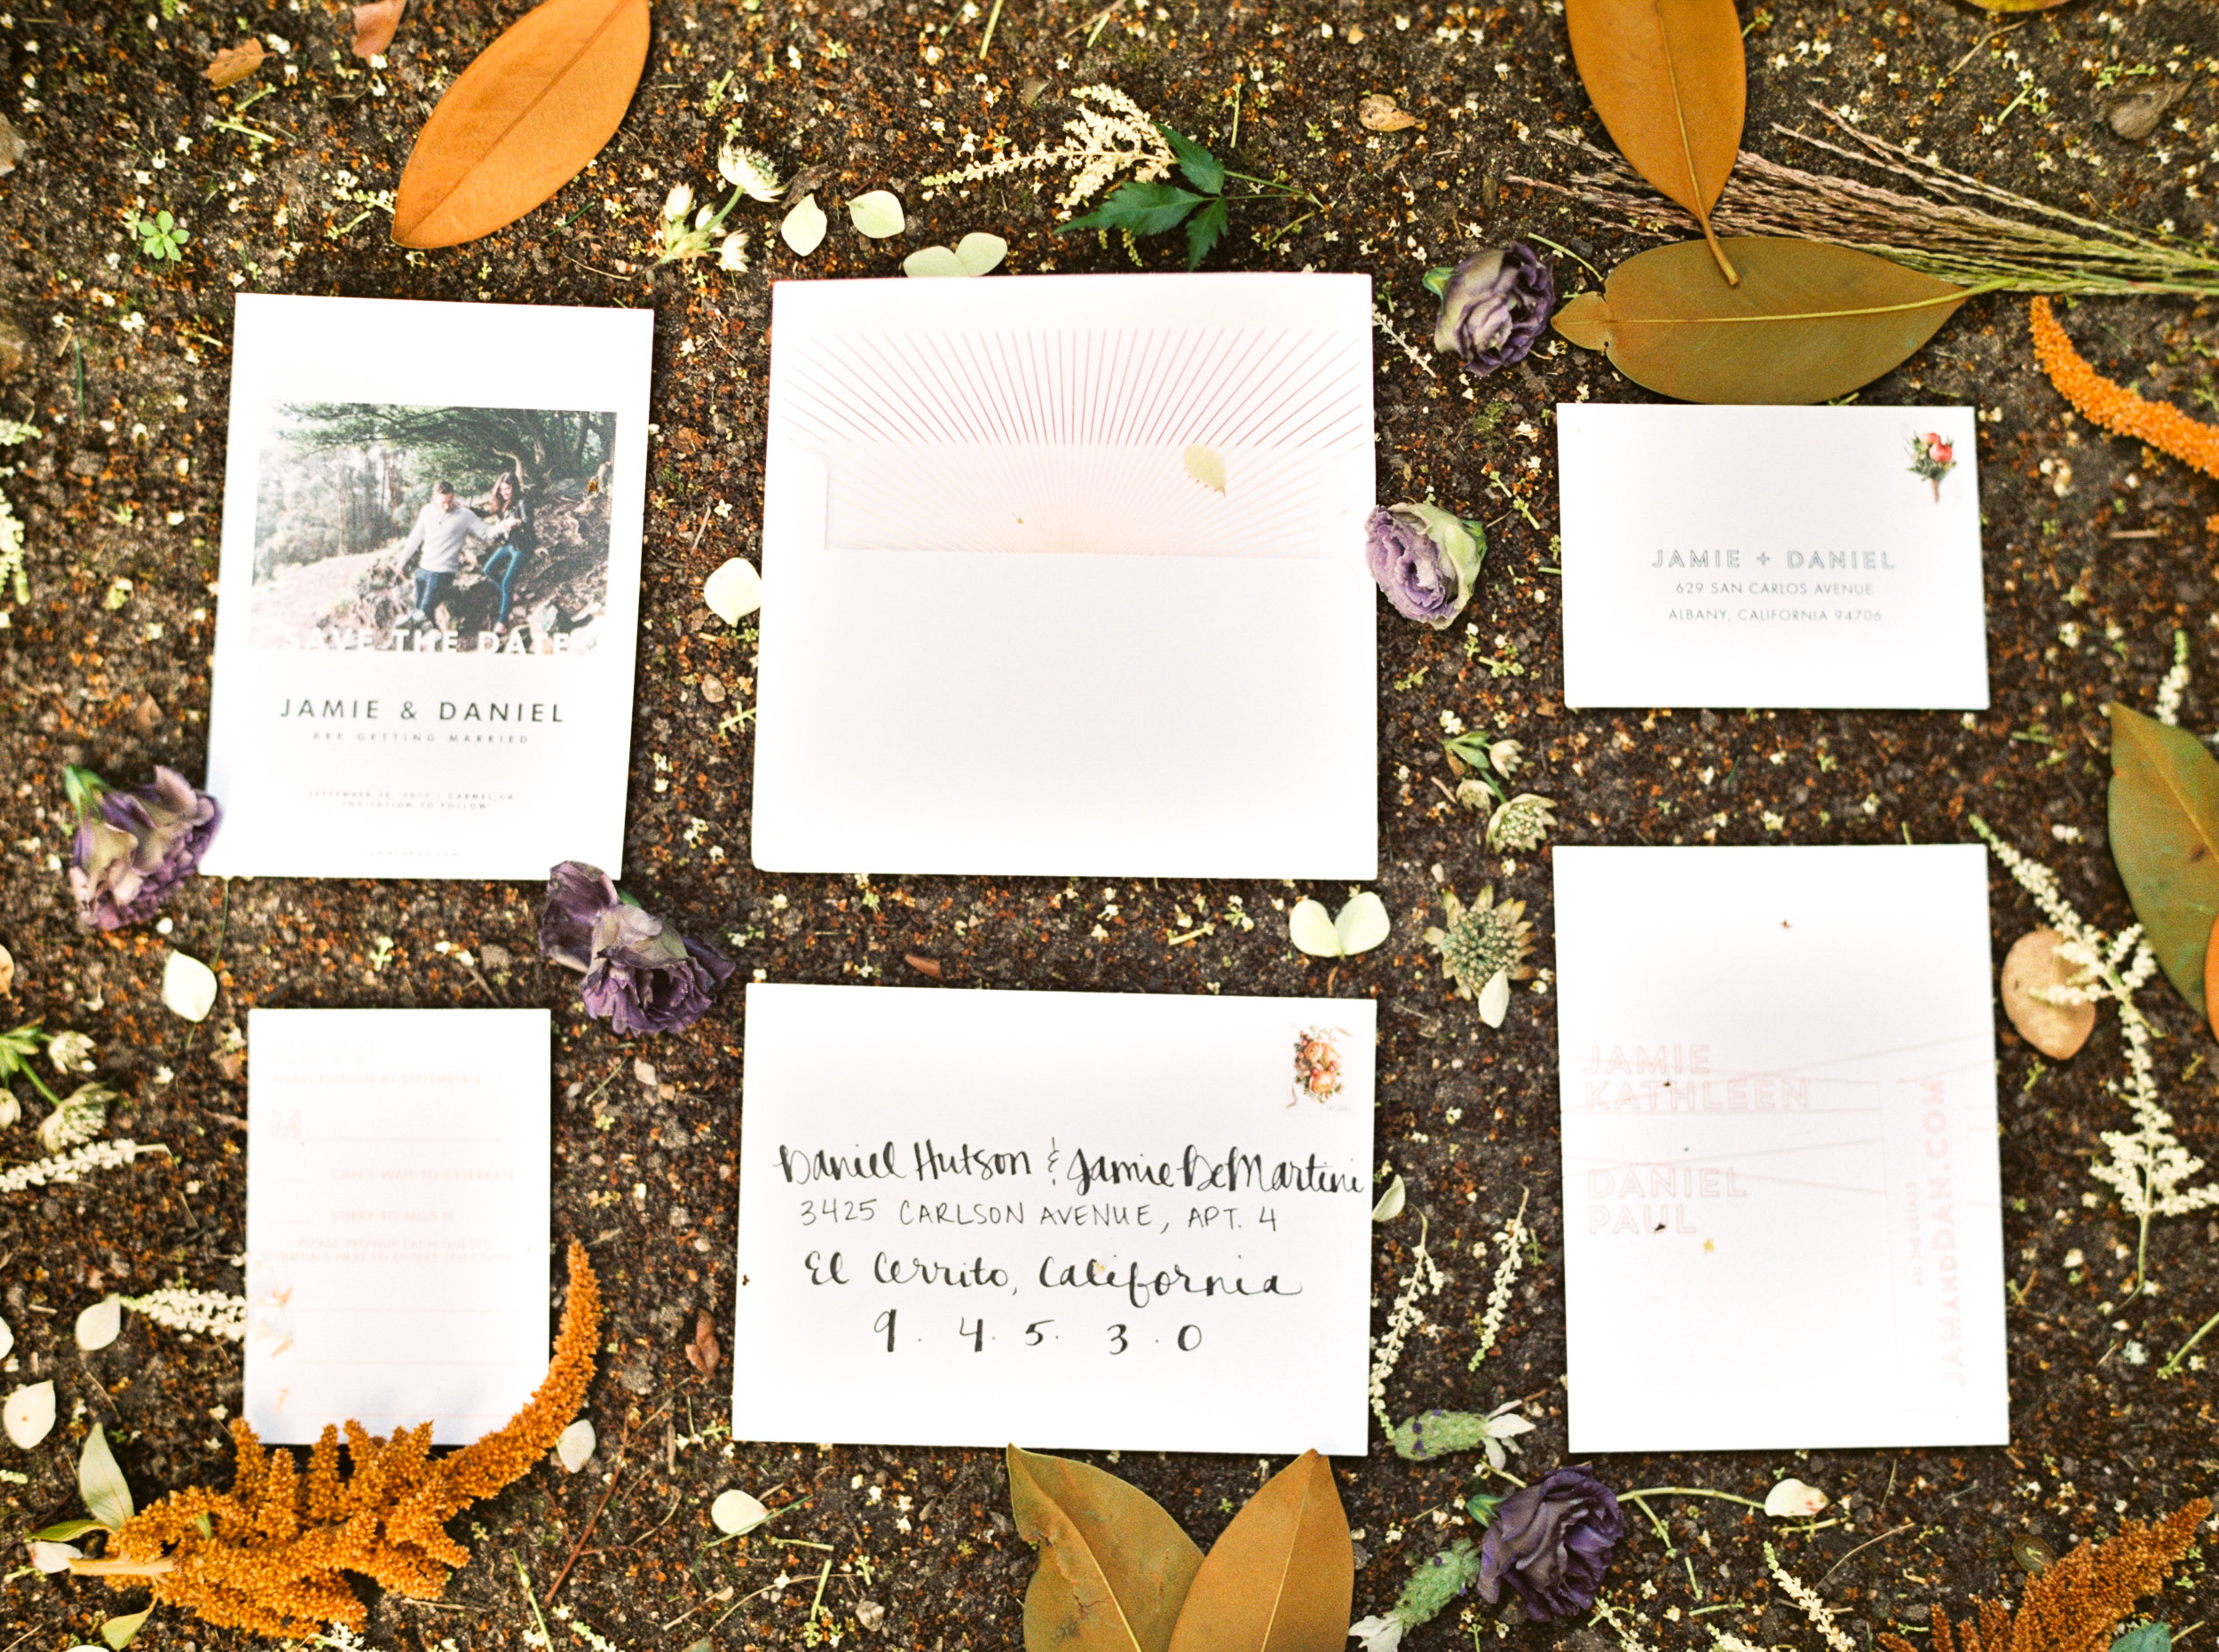 Mission Ranch Wedding by Outlive Creative